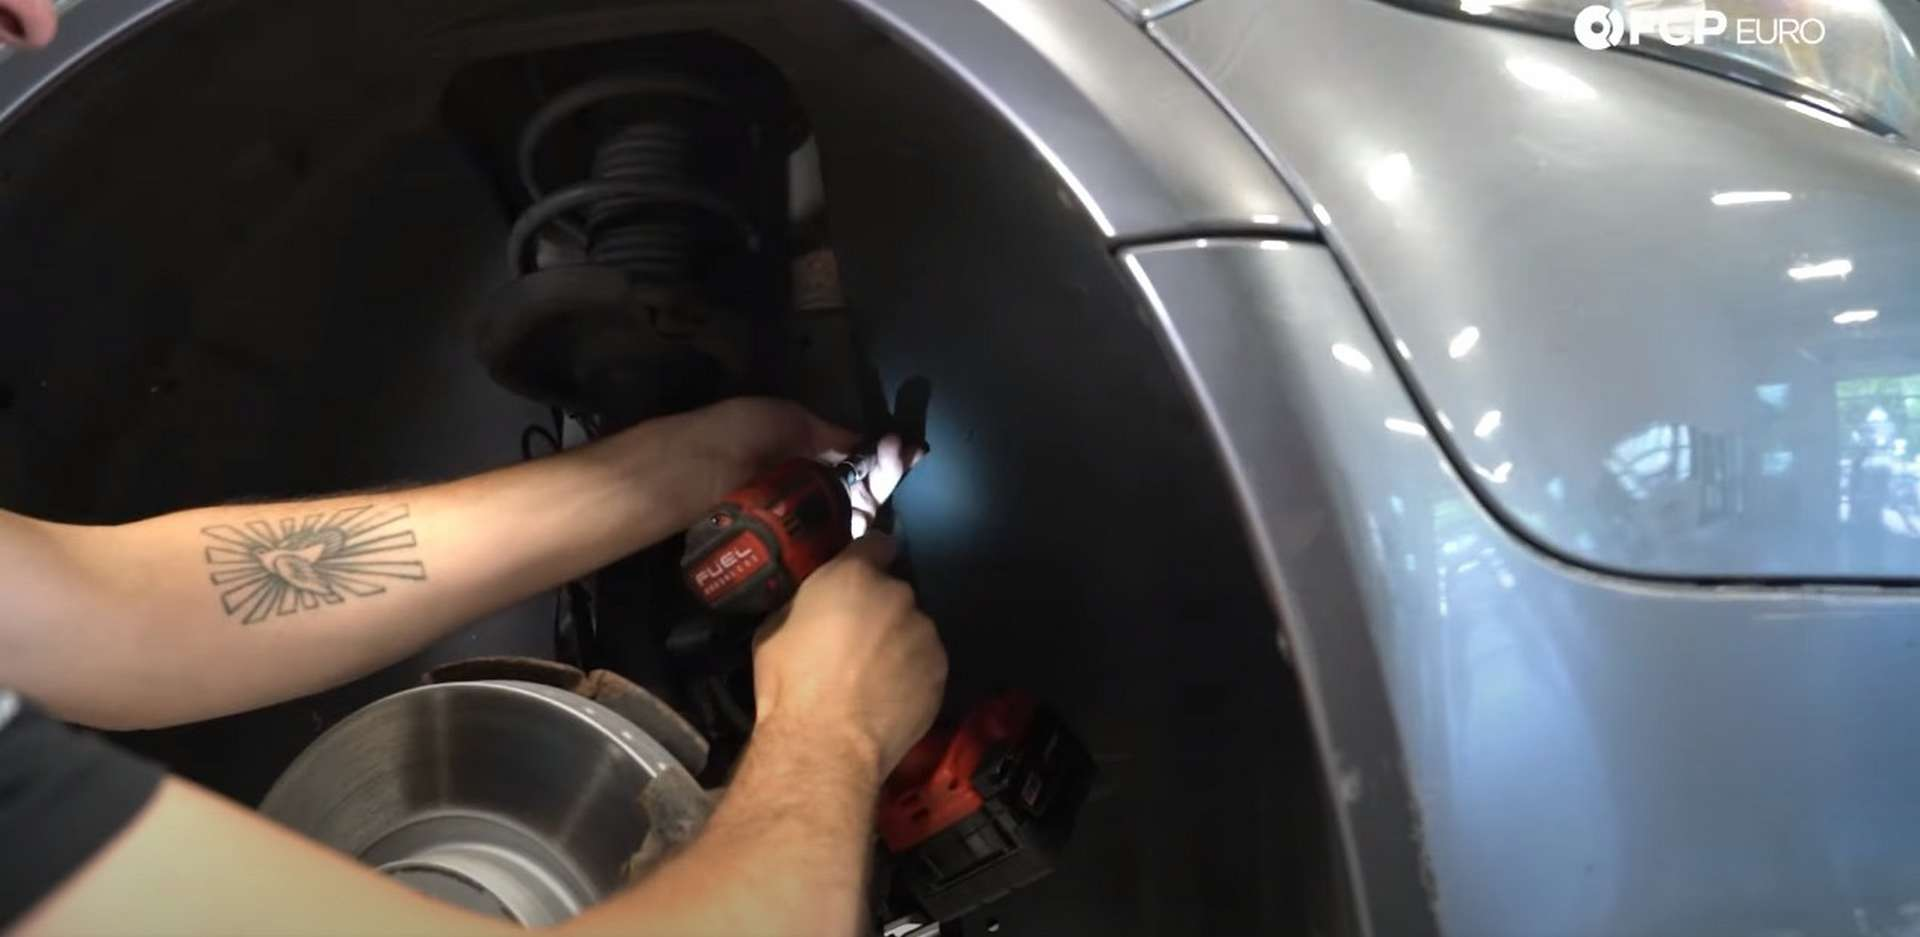 DIY Volvo Alternator and Serpentine Belt Replacement removing the plastic nuts